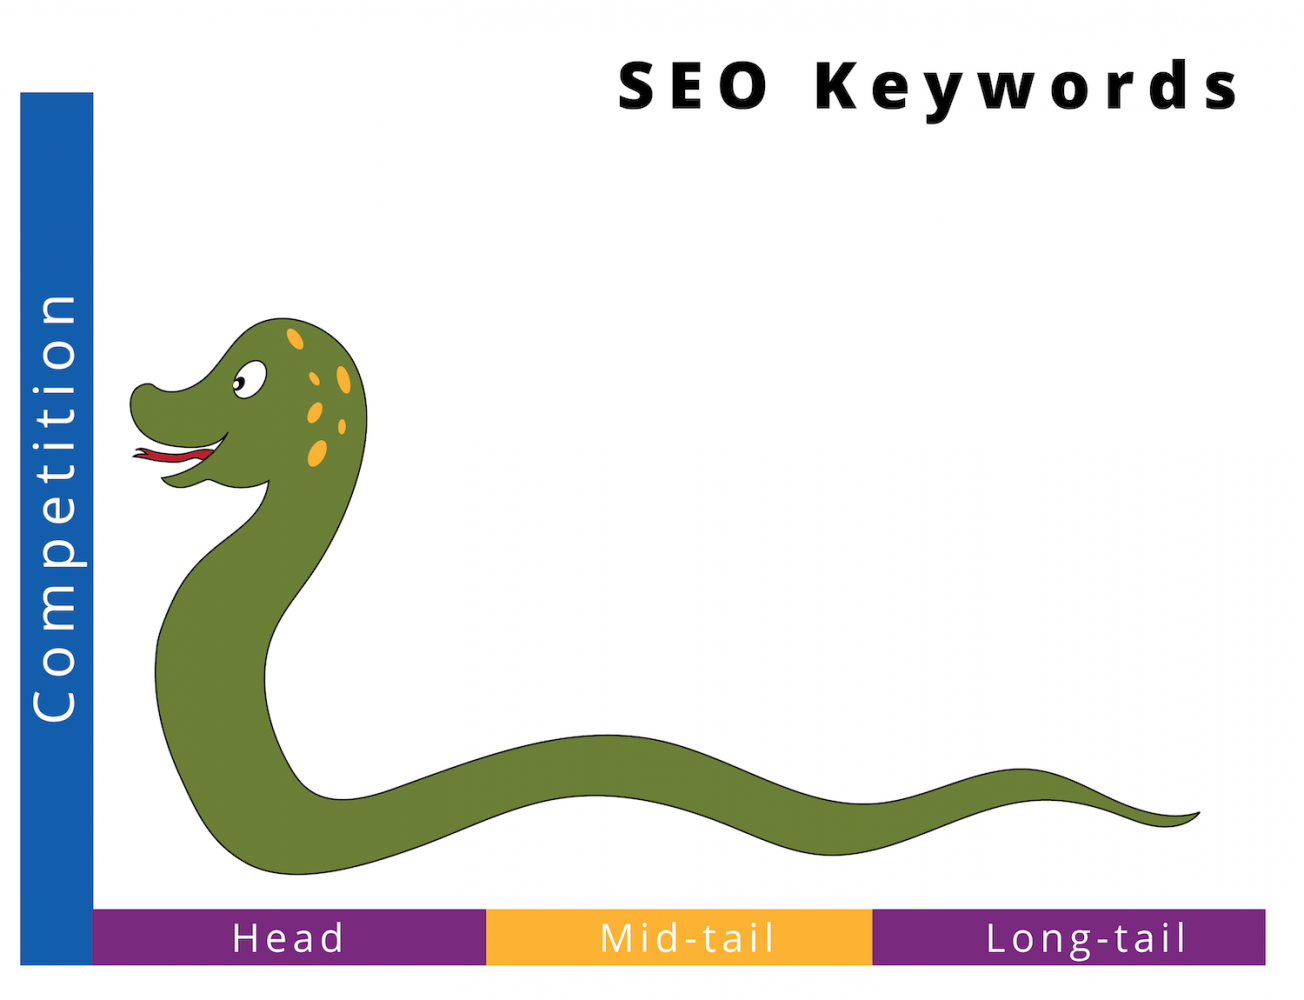 Smitty the SEO snake represents the diminishing competition, but also the diminishing potential traffic, the longer a keyword gets.